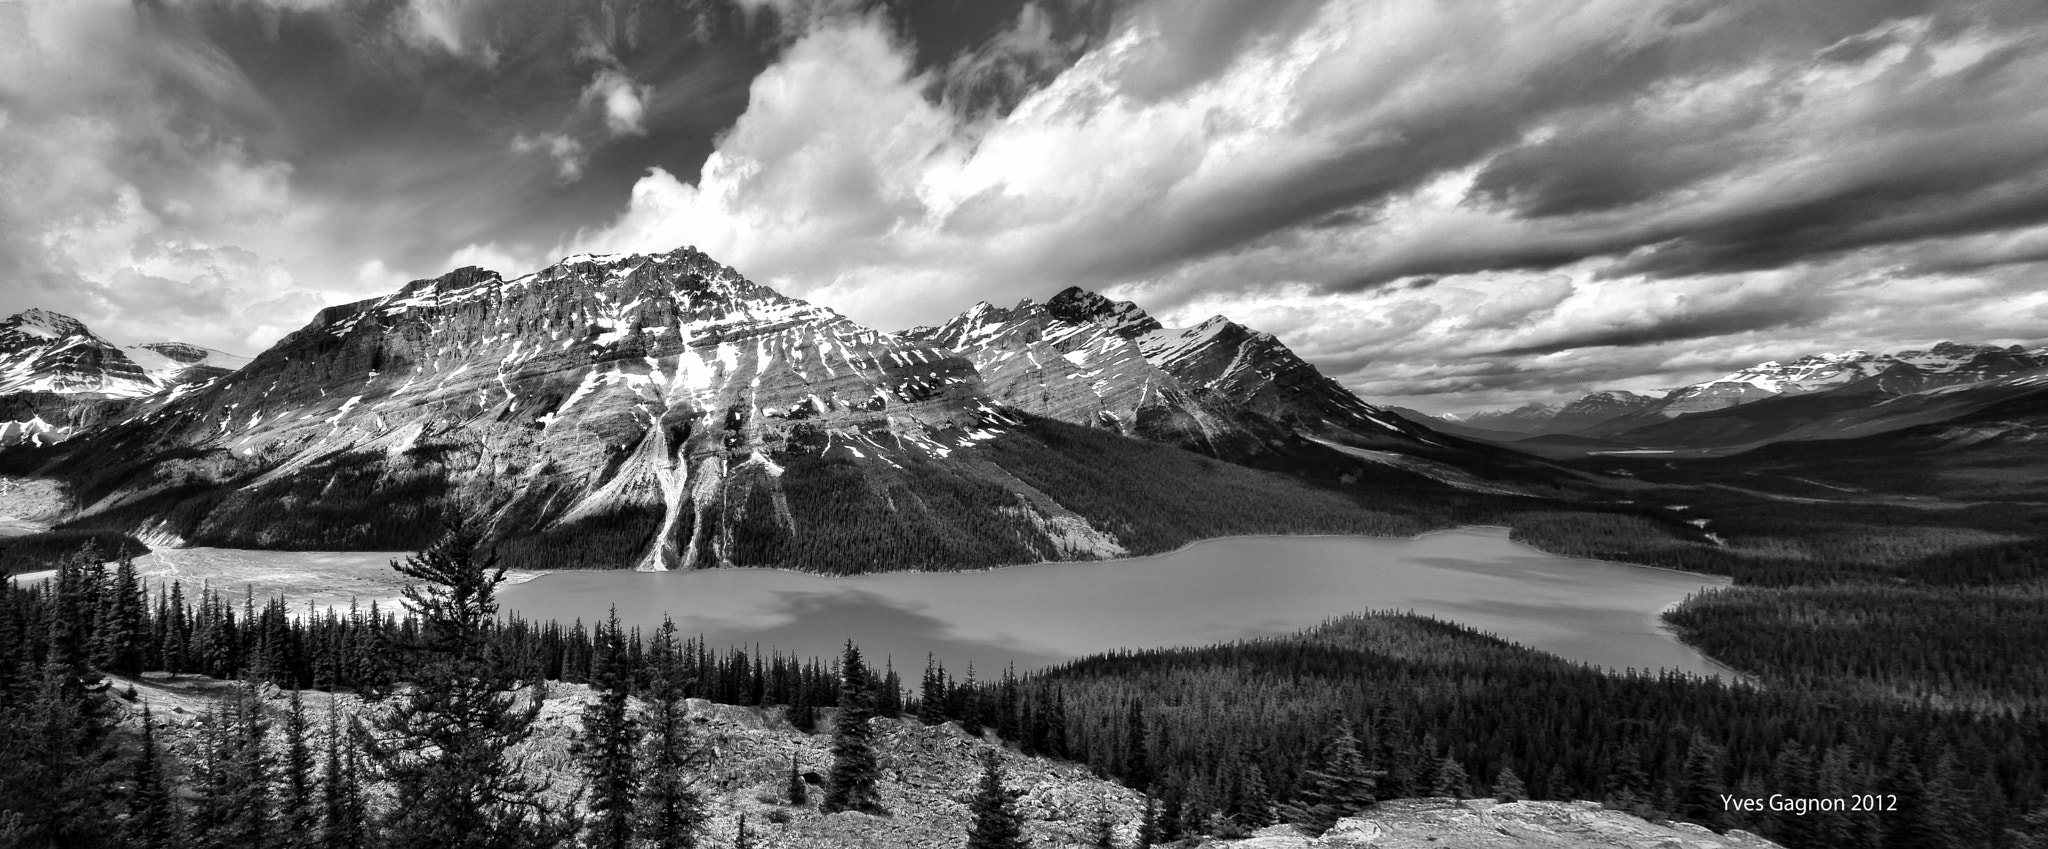 Photograph Peyto Lake, Jasper National Park Canada by Yves Gagnon on 500px